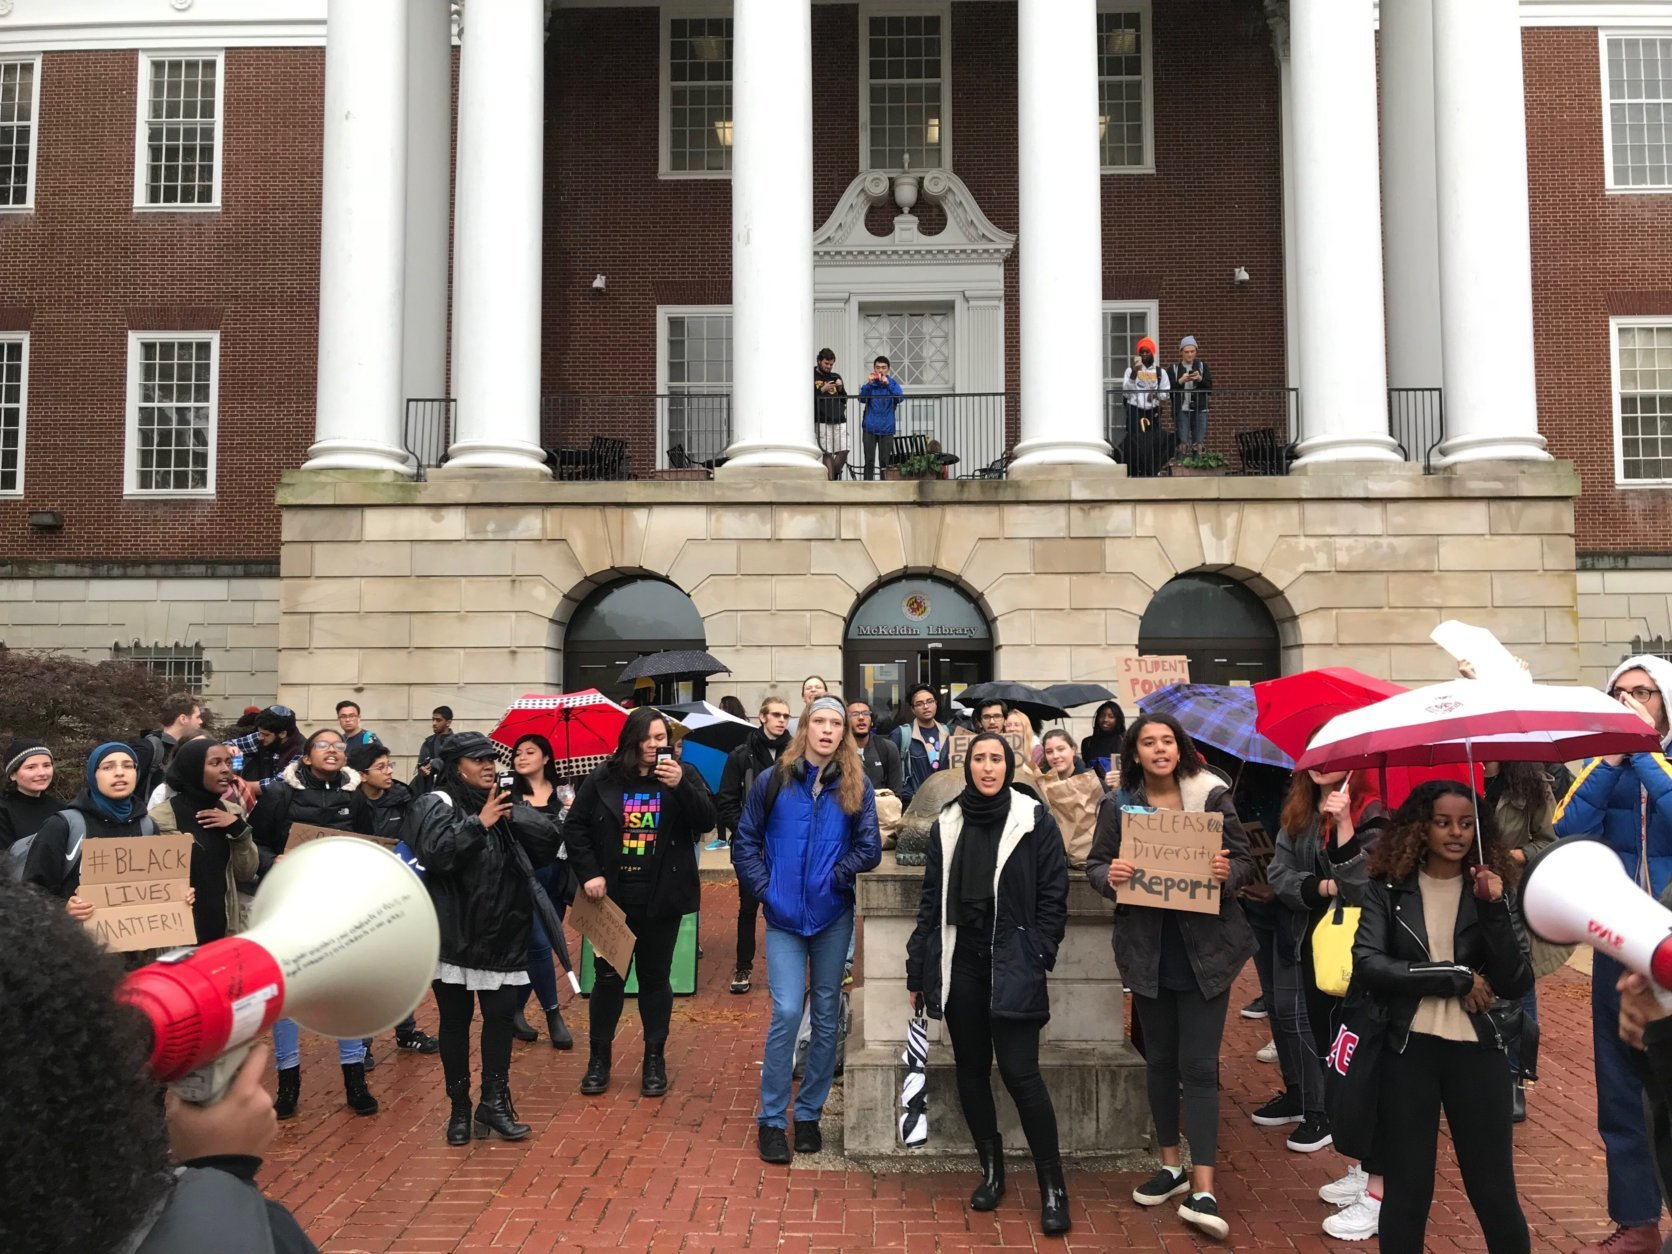 The students said they want Loh to fulfill his pledge to step down in June. (WTOP/Dick Uliano)